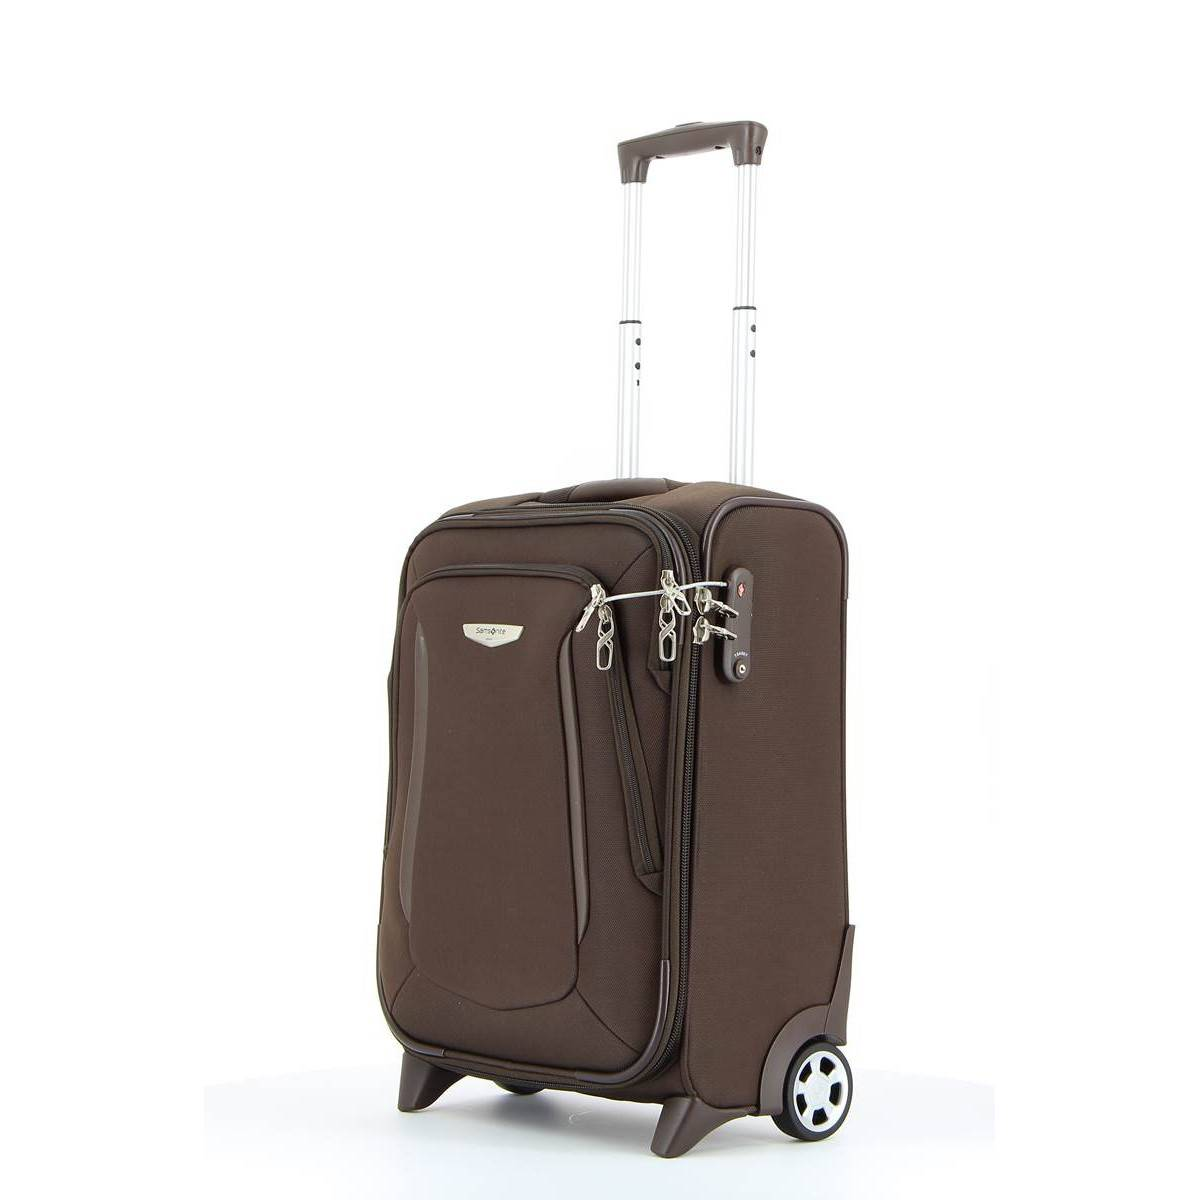 valise souple taille cabine bagages samsonite stilbag. Black Bedroom Furniture Sets. Home Design Ideas